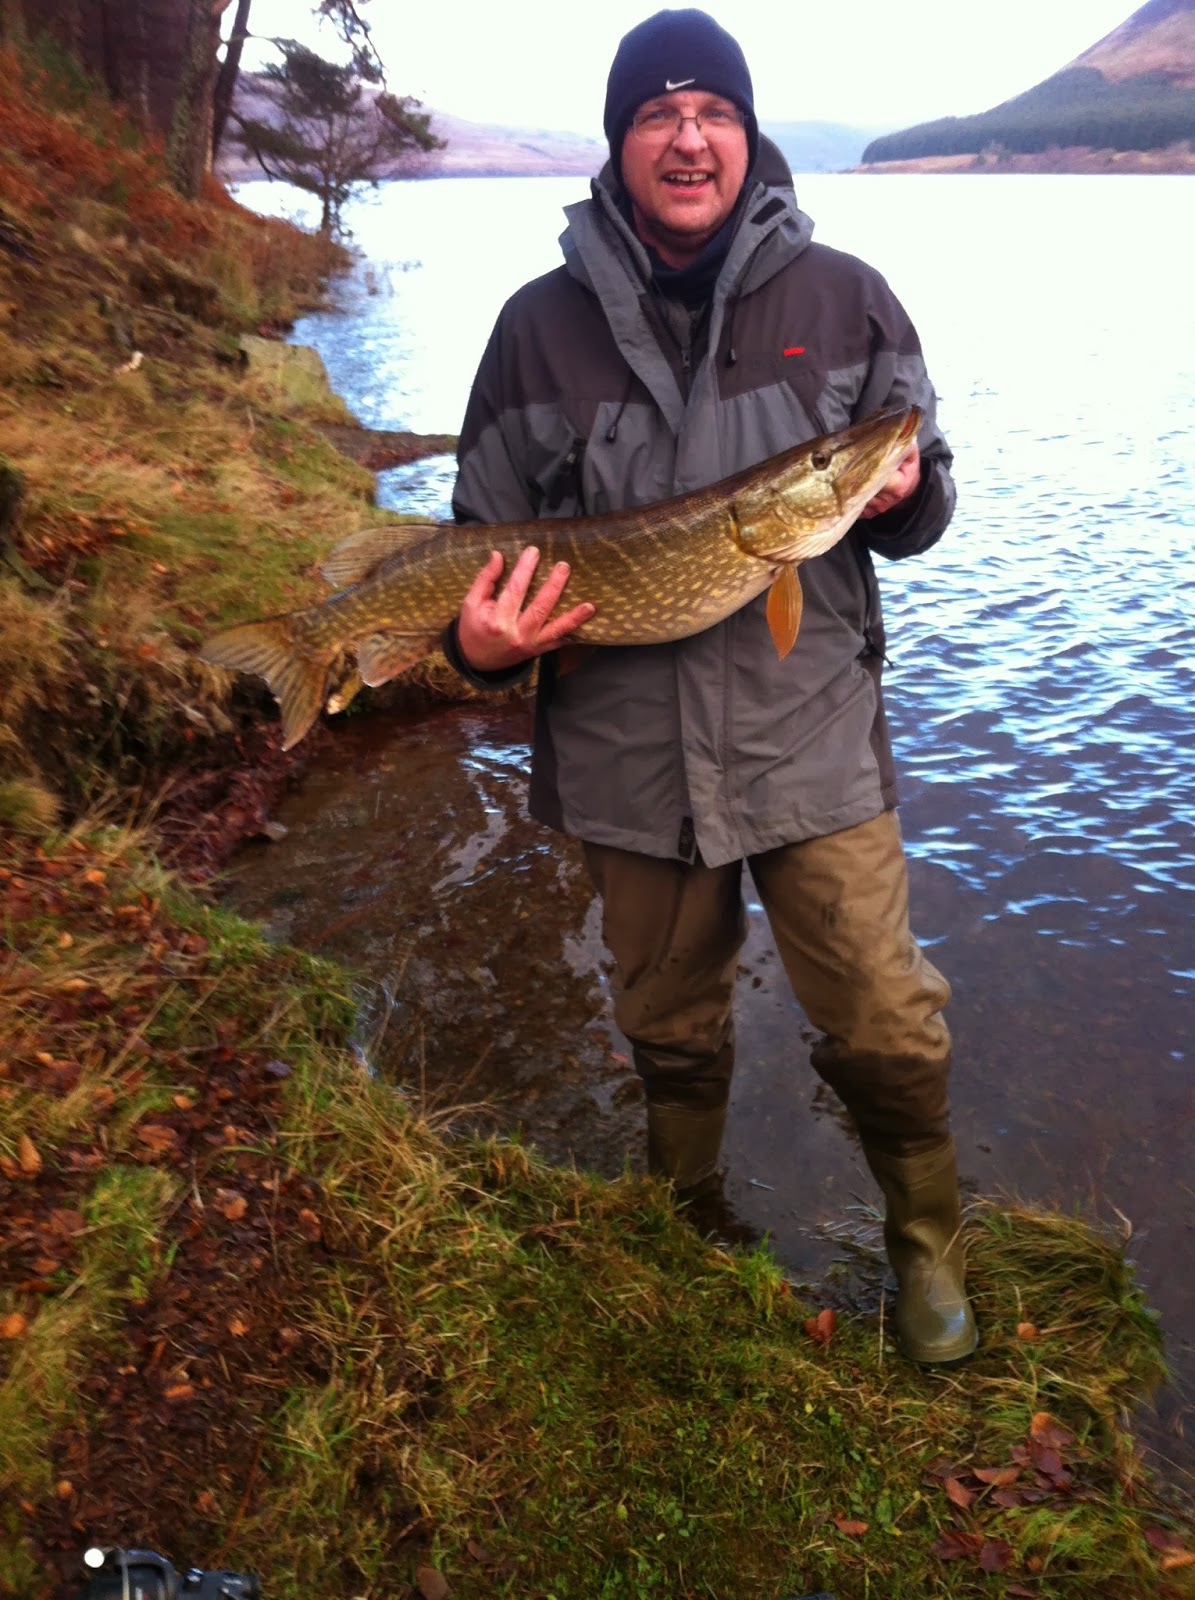 Views from the loch : January 2014